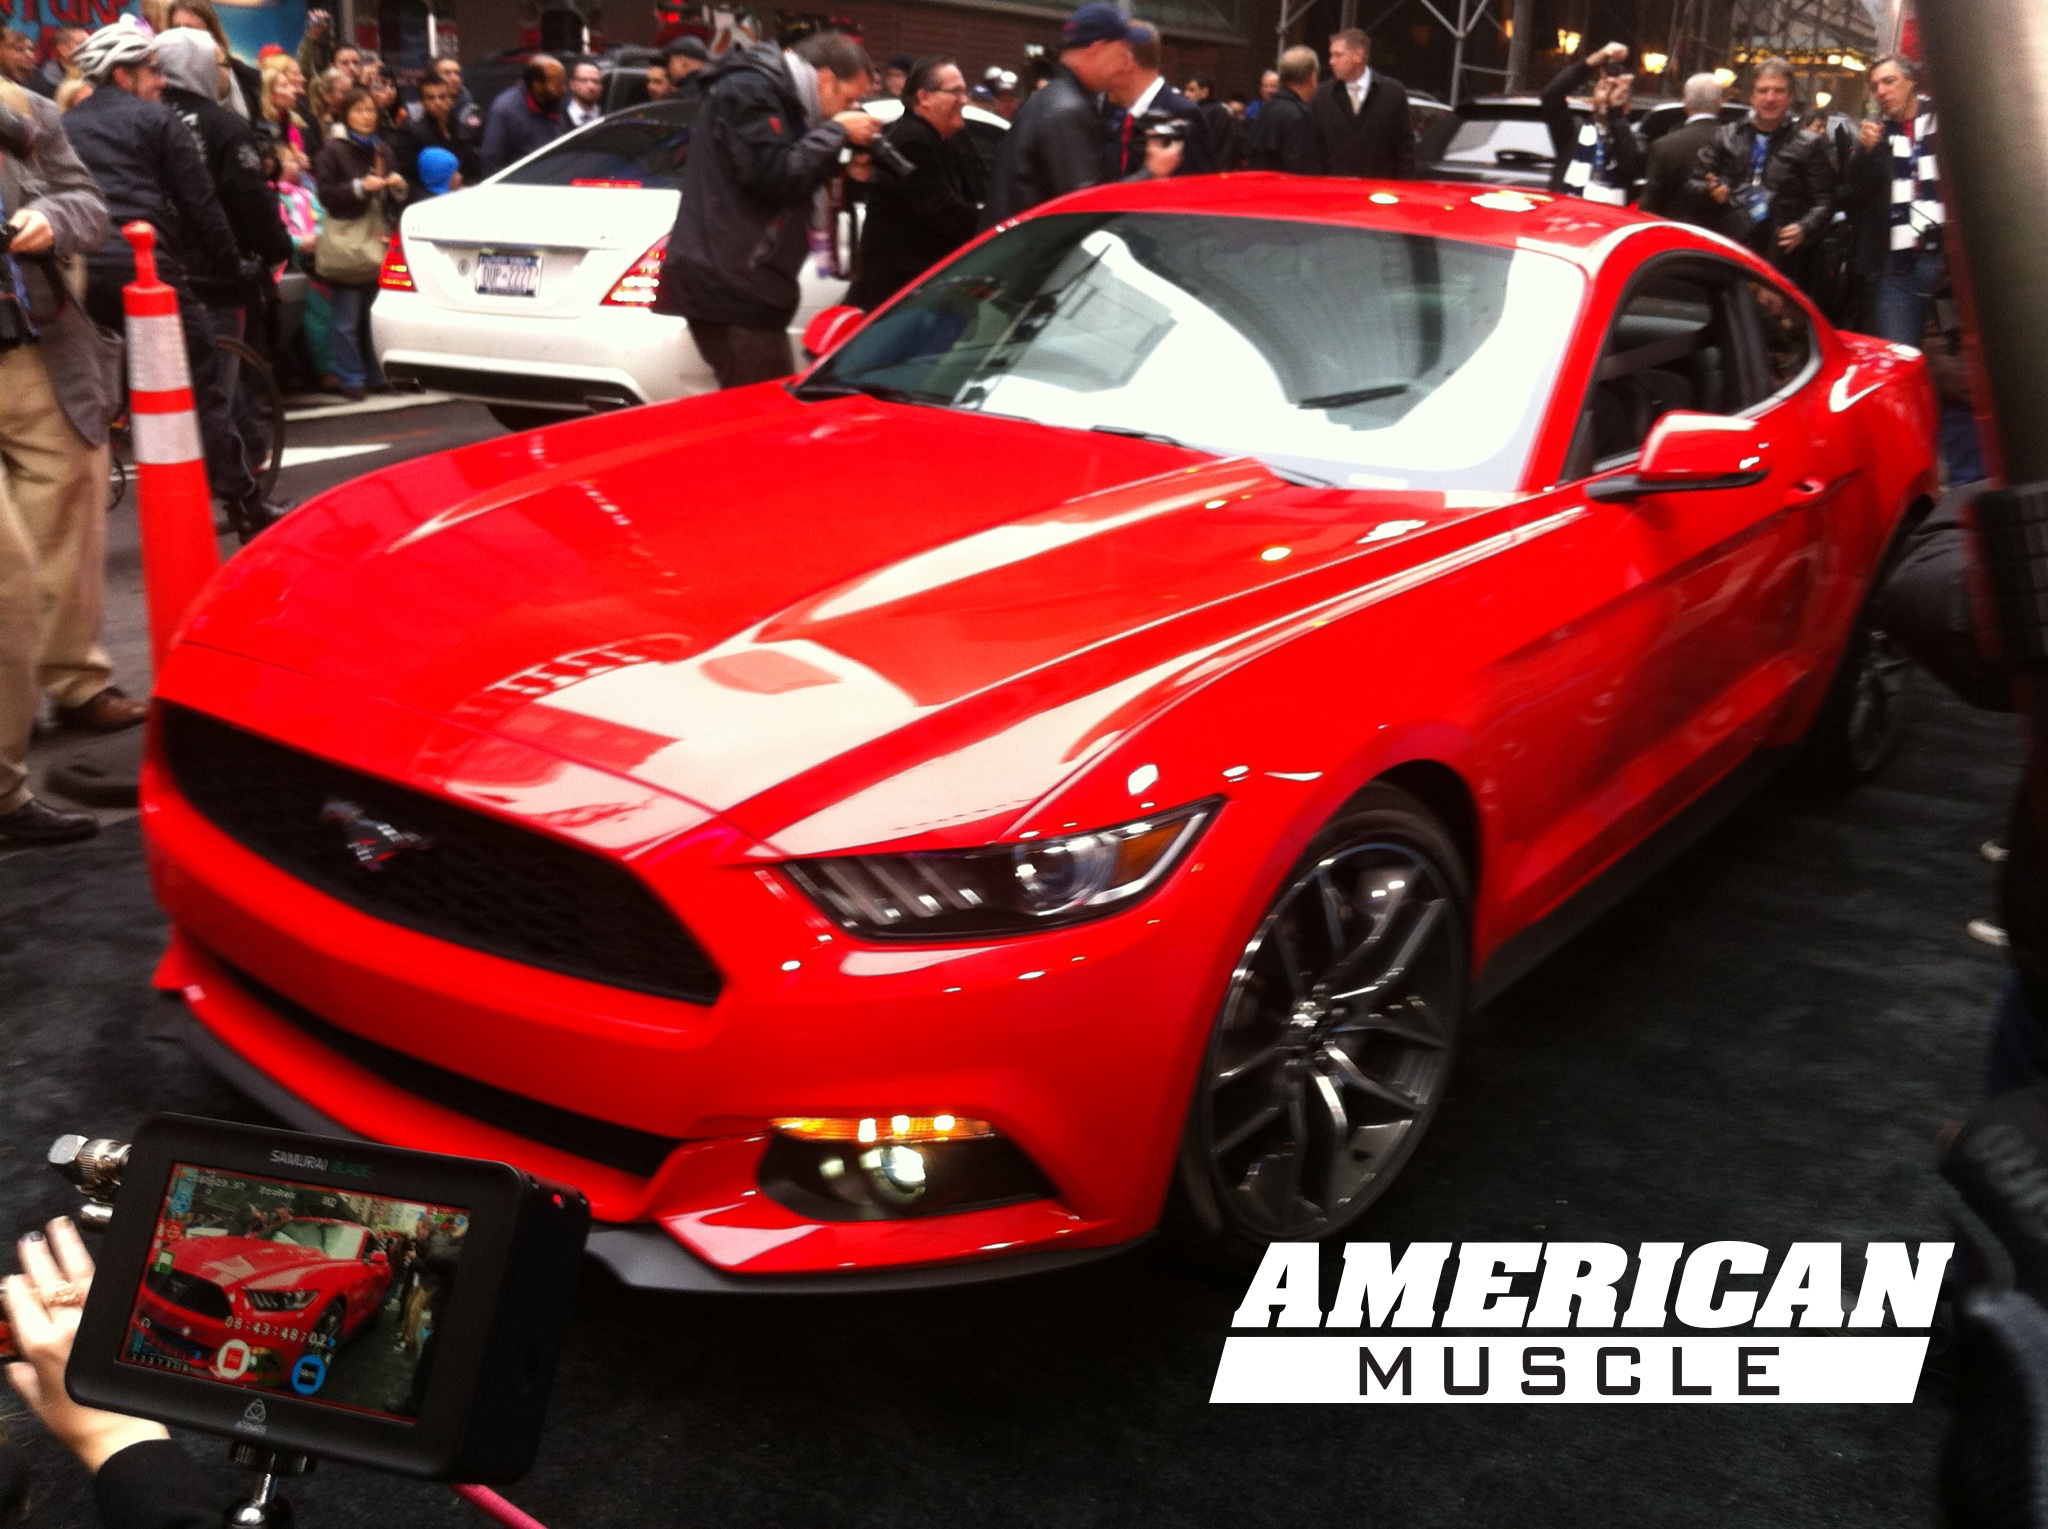 2017 Mustang Americanmuscle